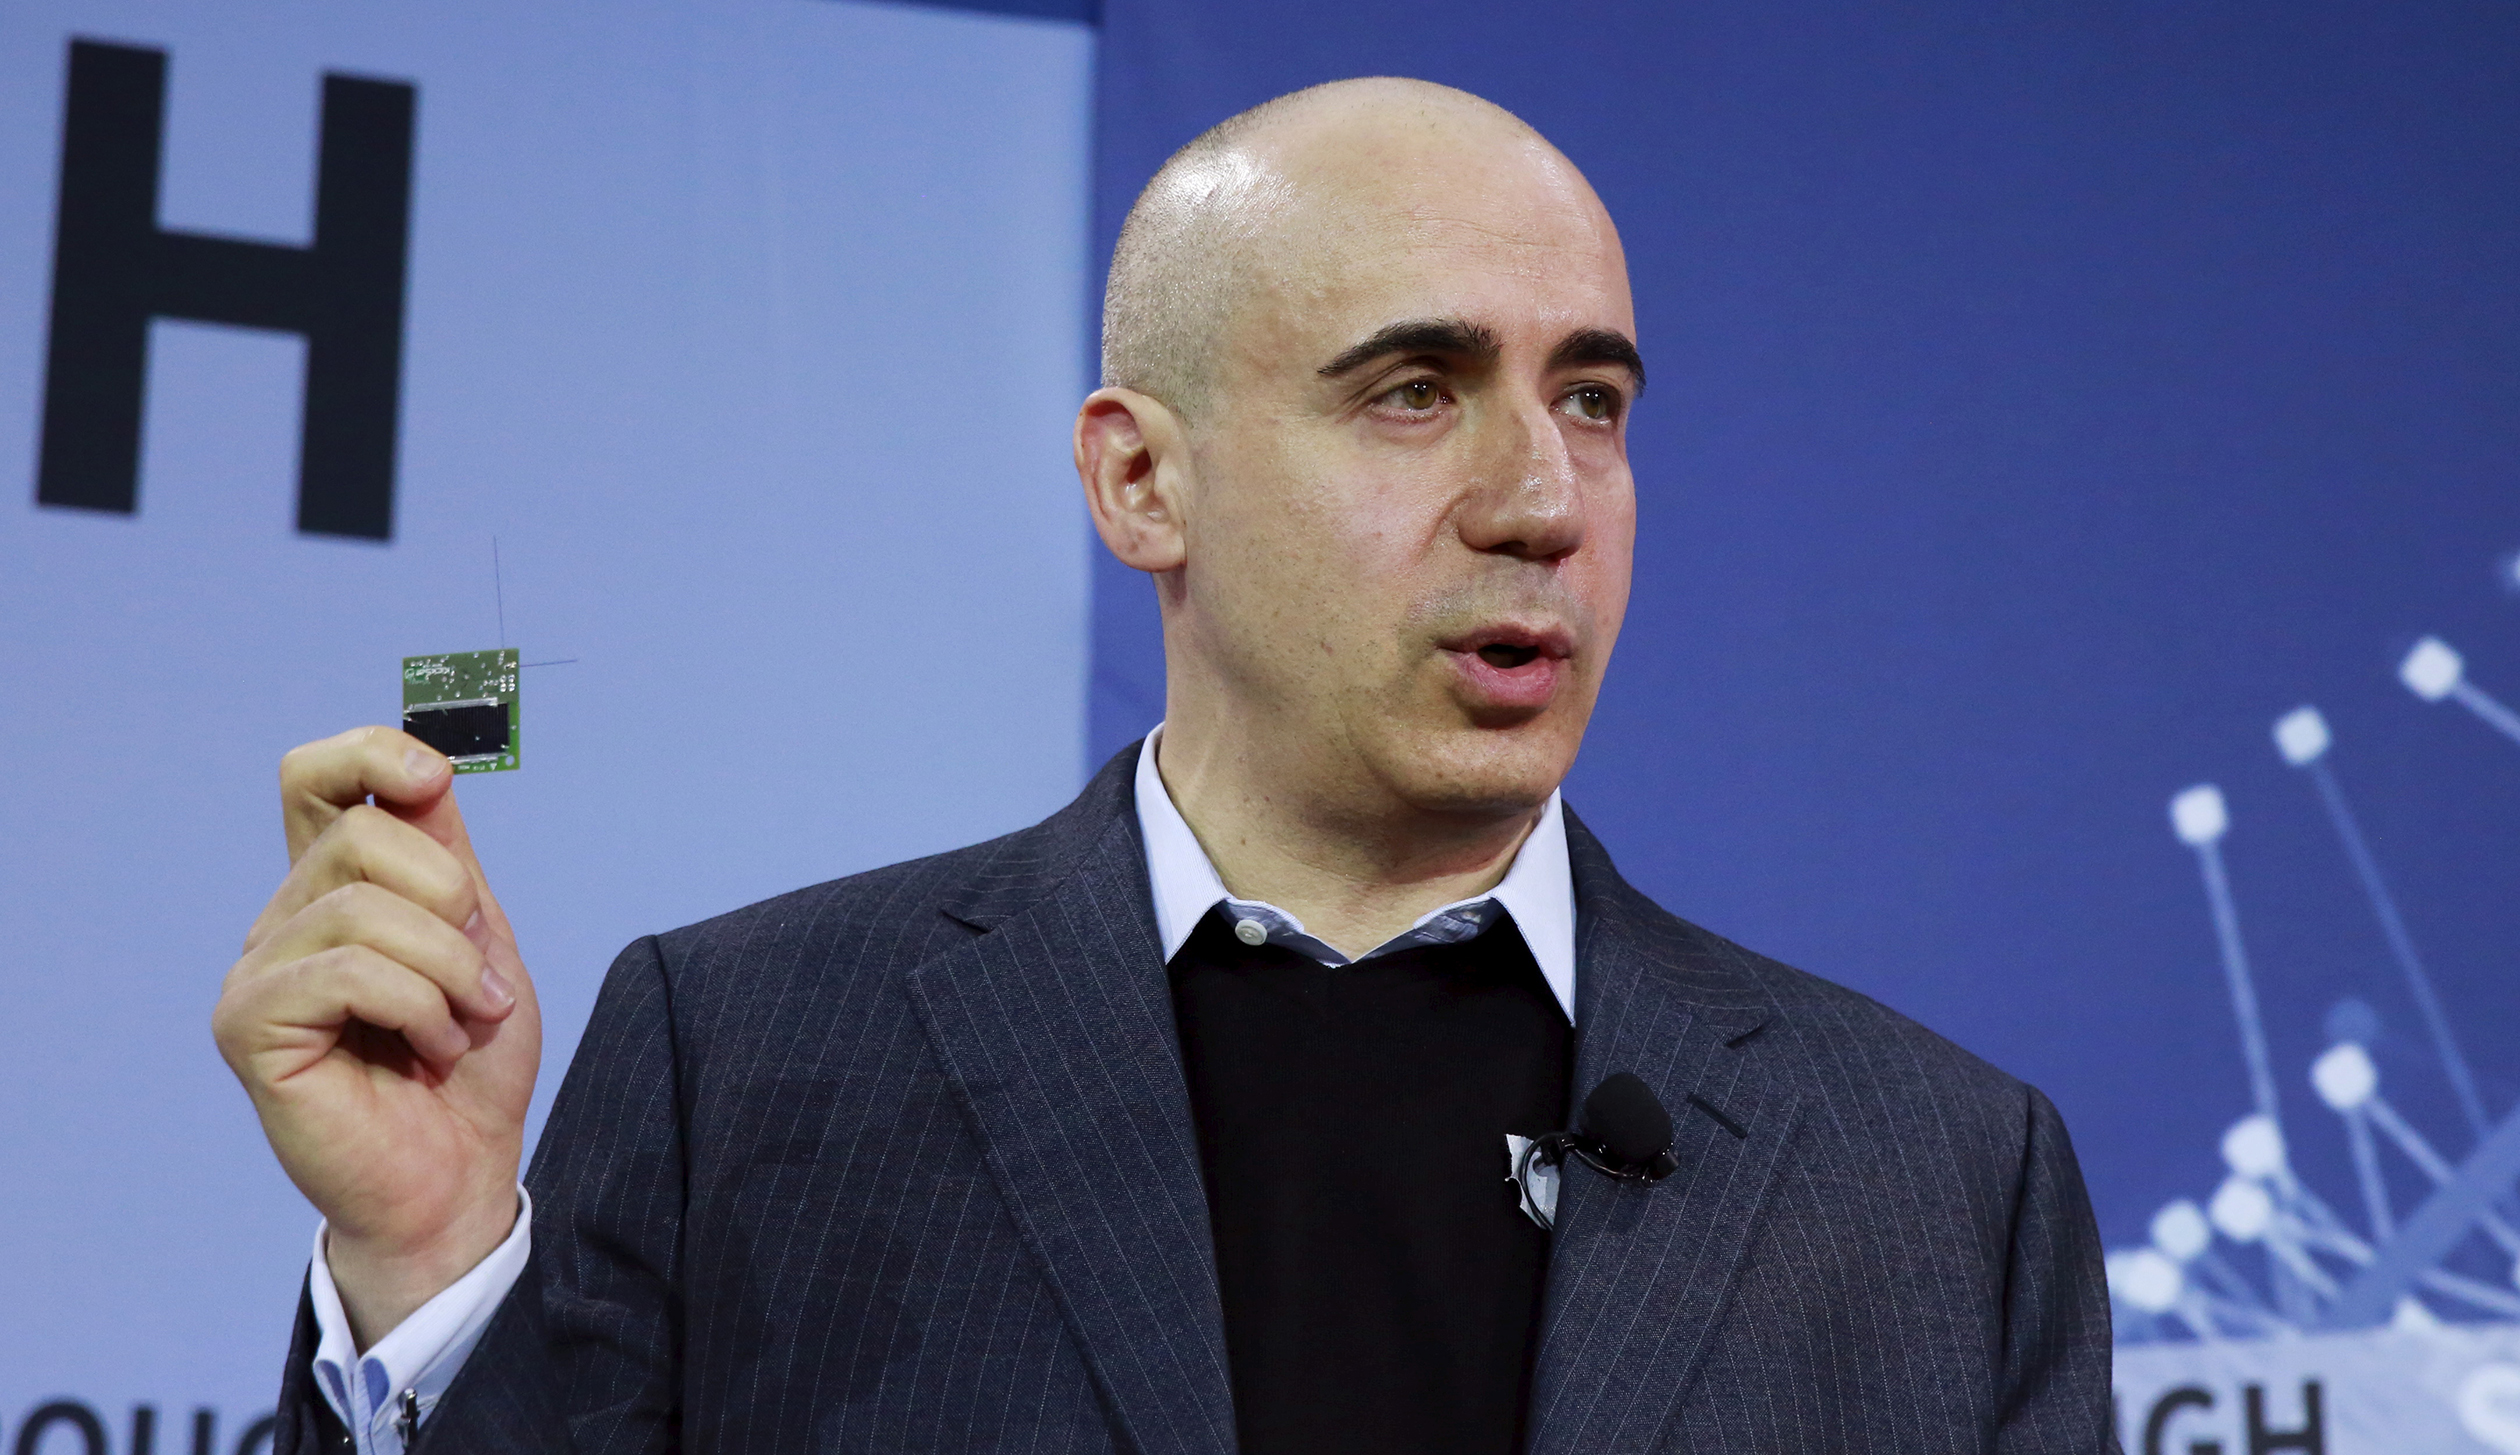 Investor Yuri Milner holds a small chip during an announcement of the Breakthrough Starshot initiative in New York